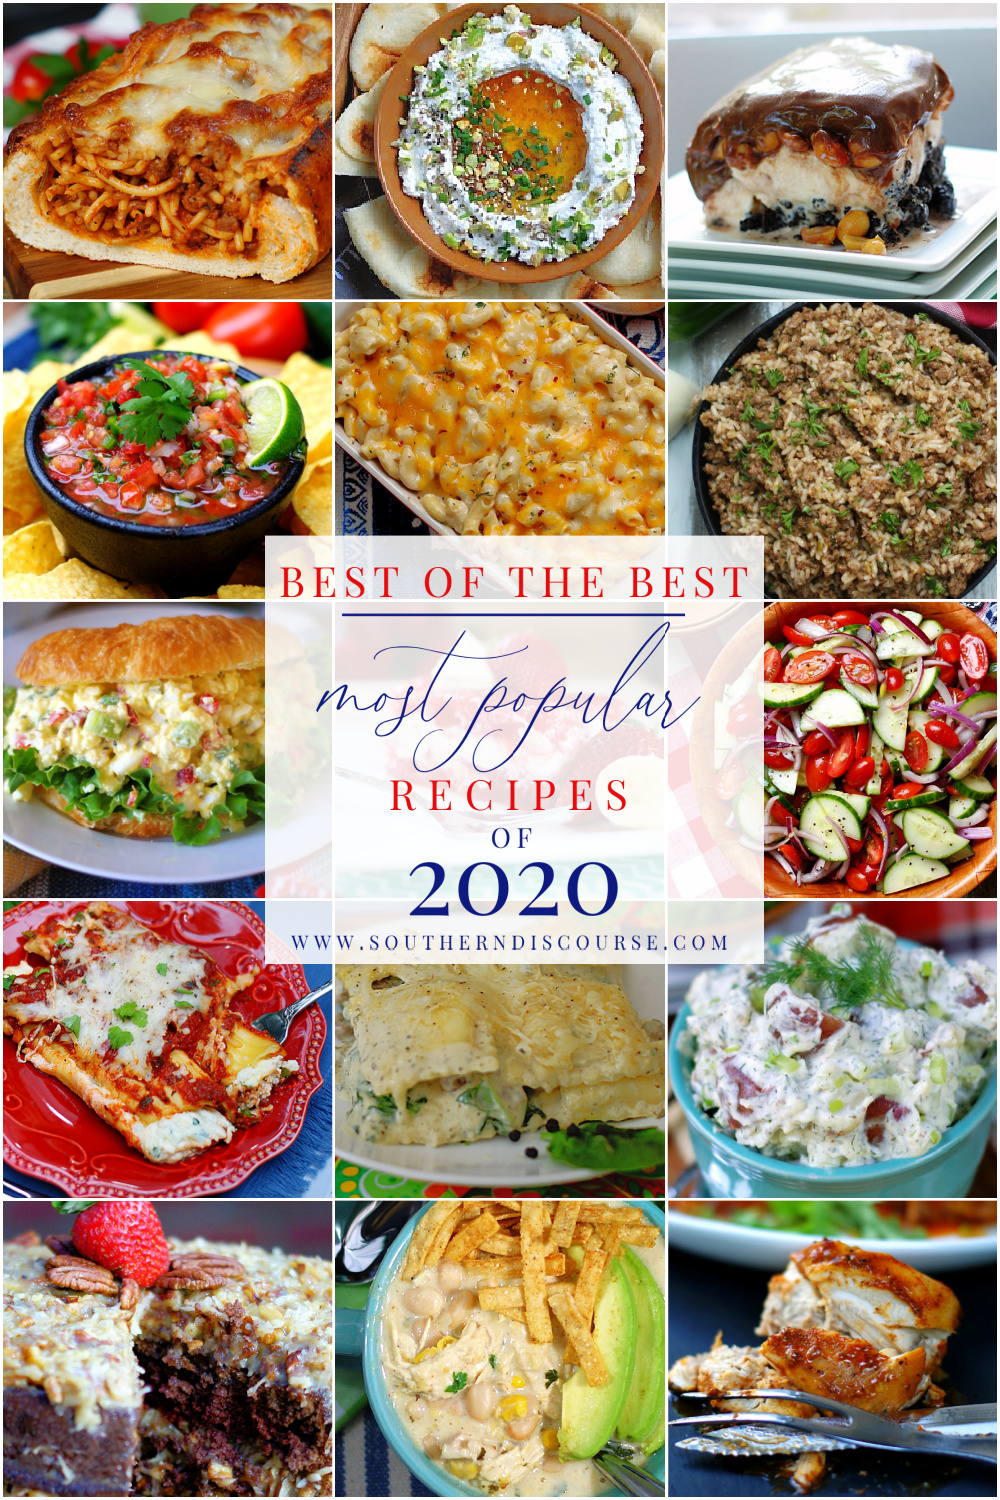 From Out of This World Cream Cheese Chicken Chili to Mamaw's German Chocolate Cake, these are the top 15 recipes that kept readers coming back again and again this year. I bet your favorite made the list!